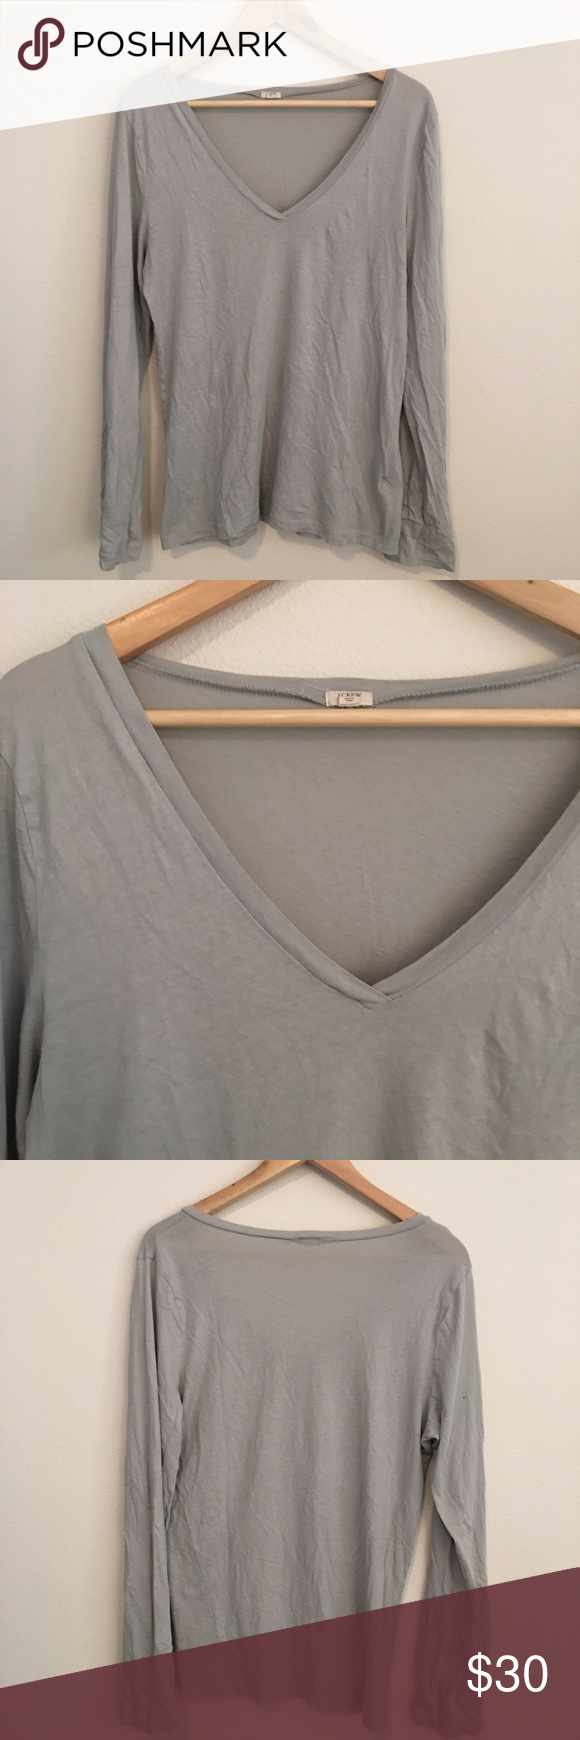 J. Crew V-neck Long sleeve Tee Excellent used condition. J. Crew gray long sleeved basic v-neck tee. Size XL. J. Crew Tops Tees - Long Sleeve